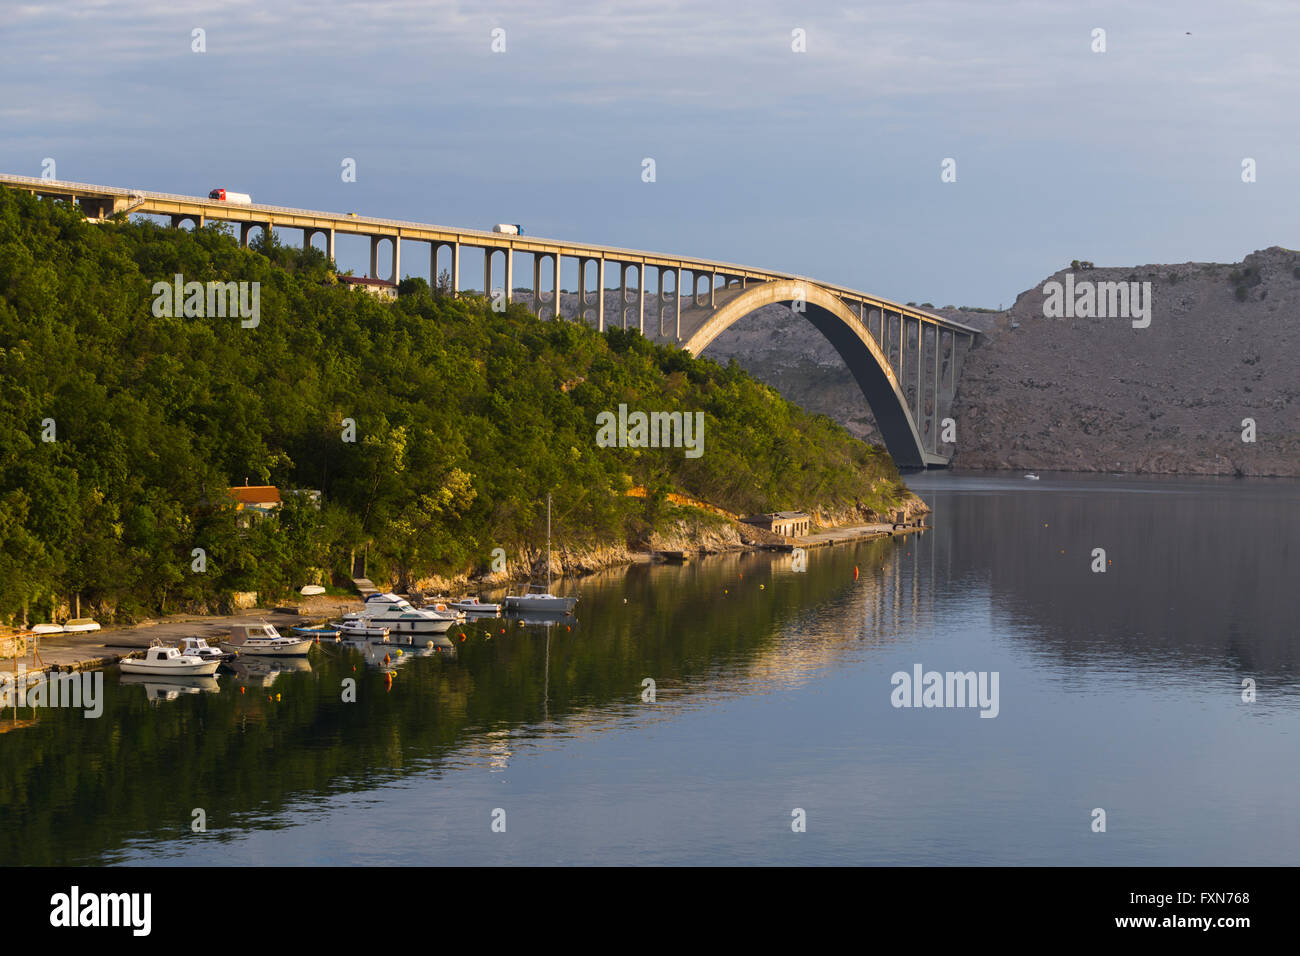 Bridge mainland - Krk island in Croatia Stock Photo